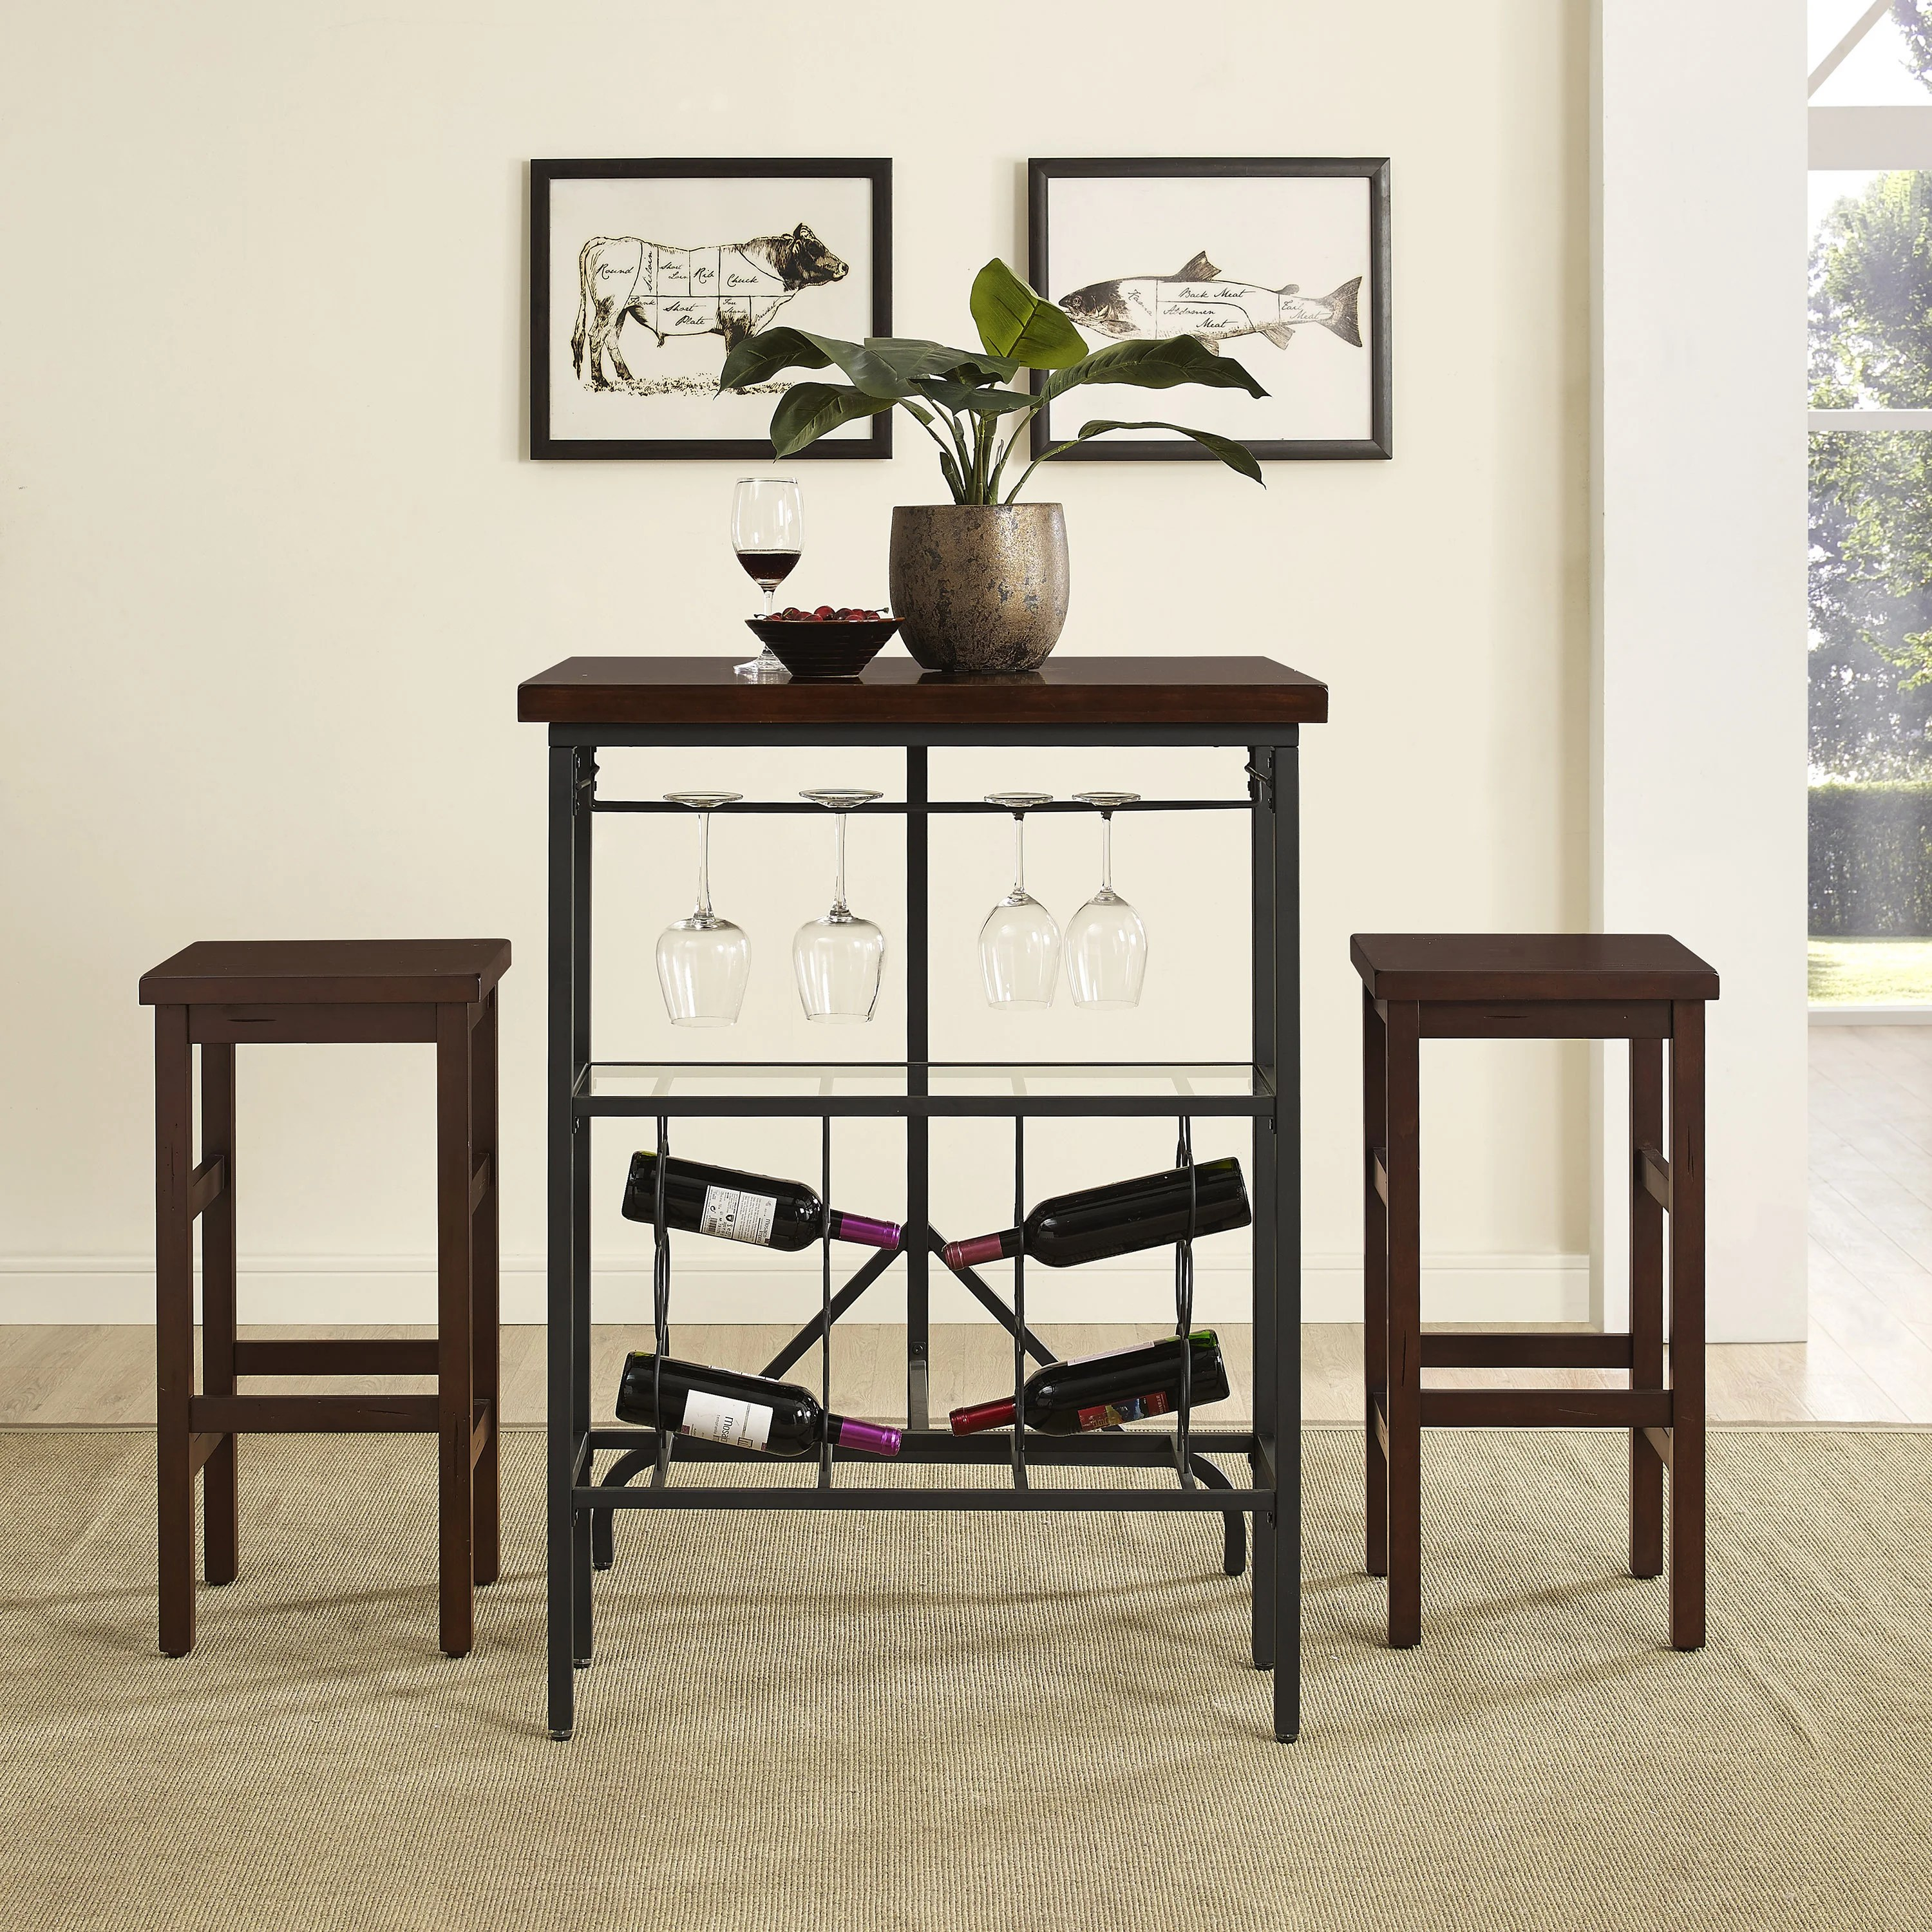 buy top rated kitchen dining room sets clearance on dining room sets on clearance id=68741